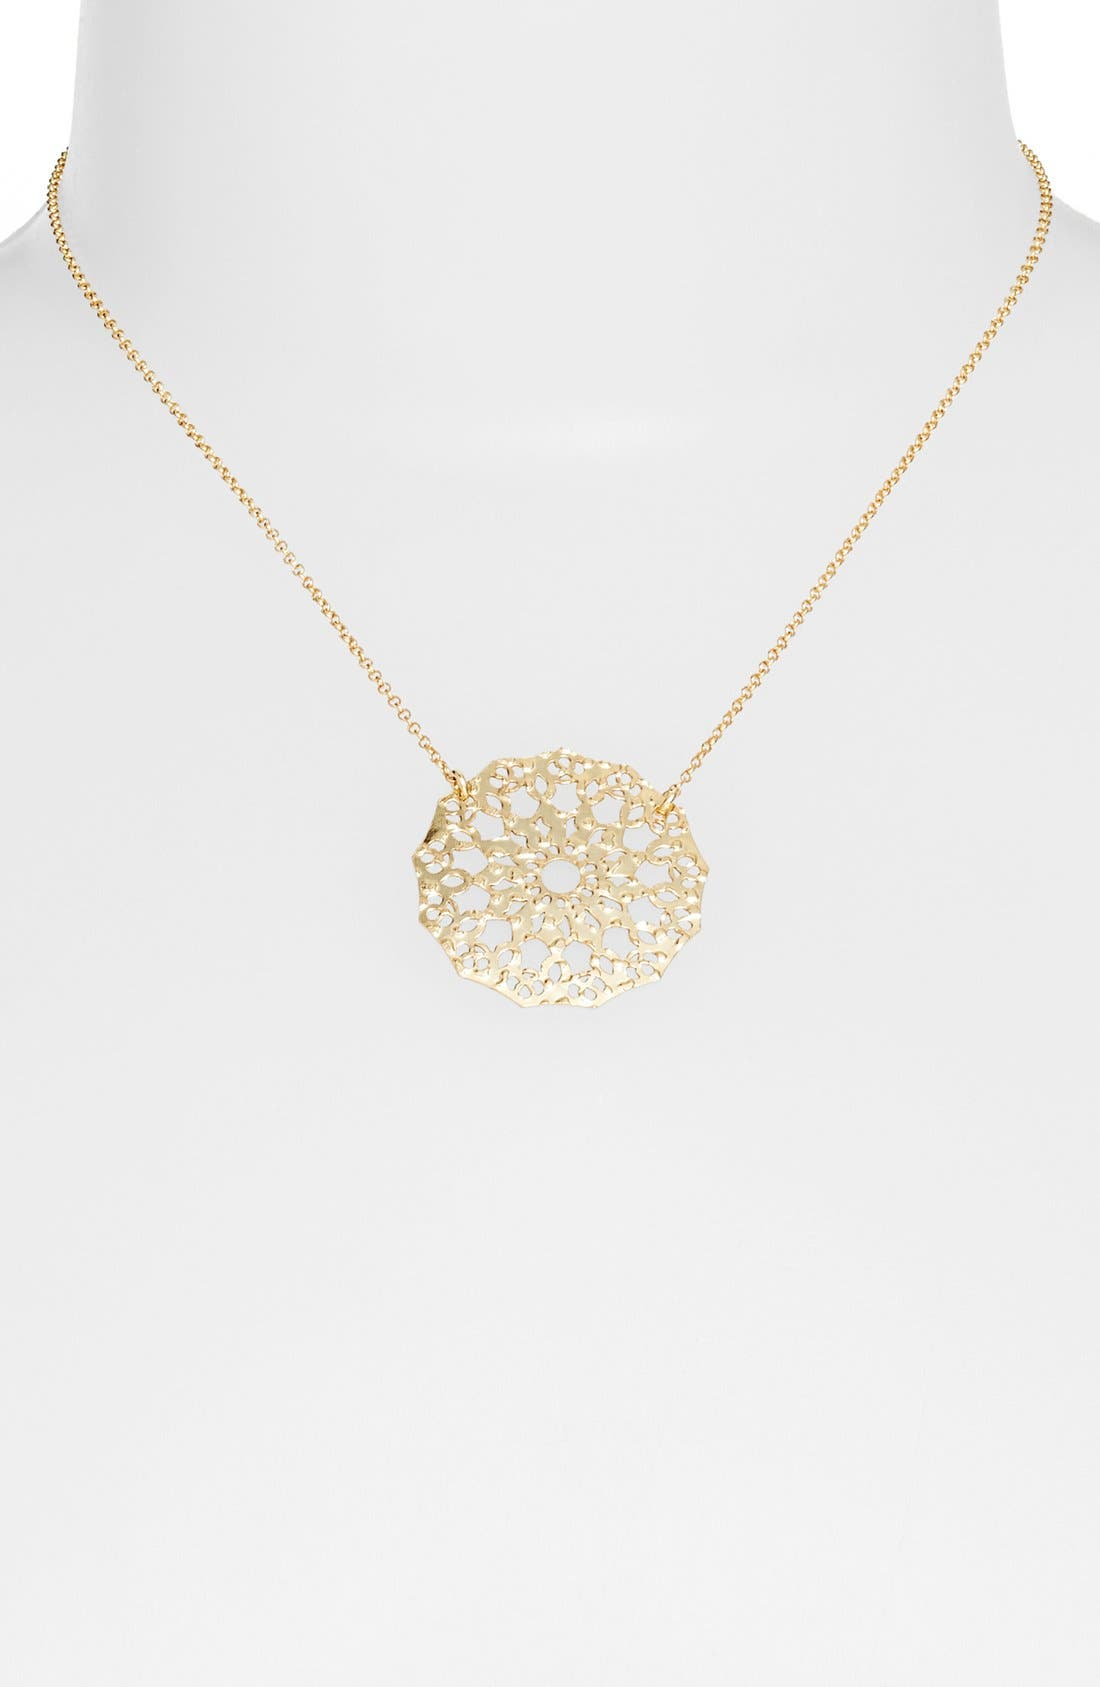 Main Image - Argento Vivo Laser Cut Circle Necklace (Online Only)